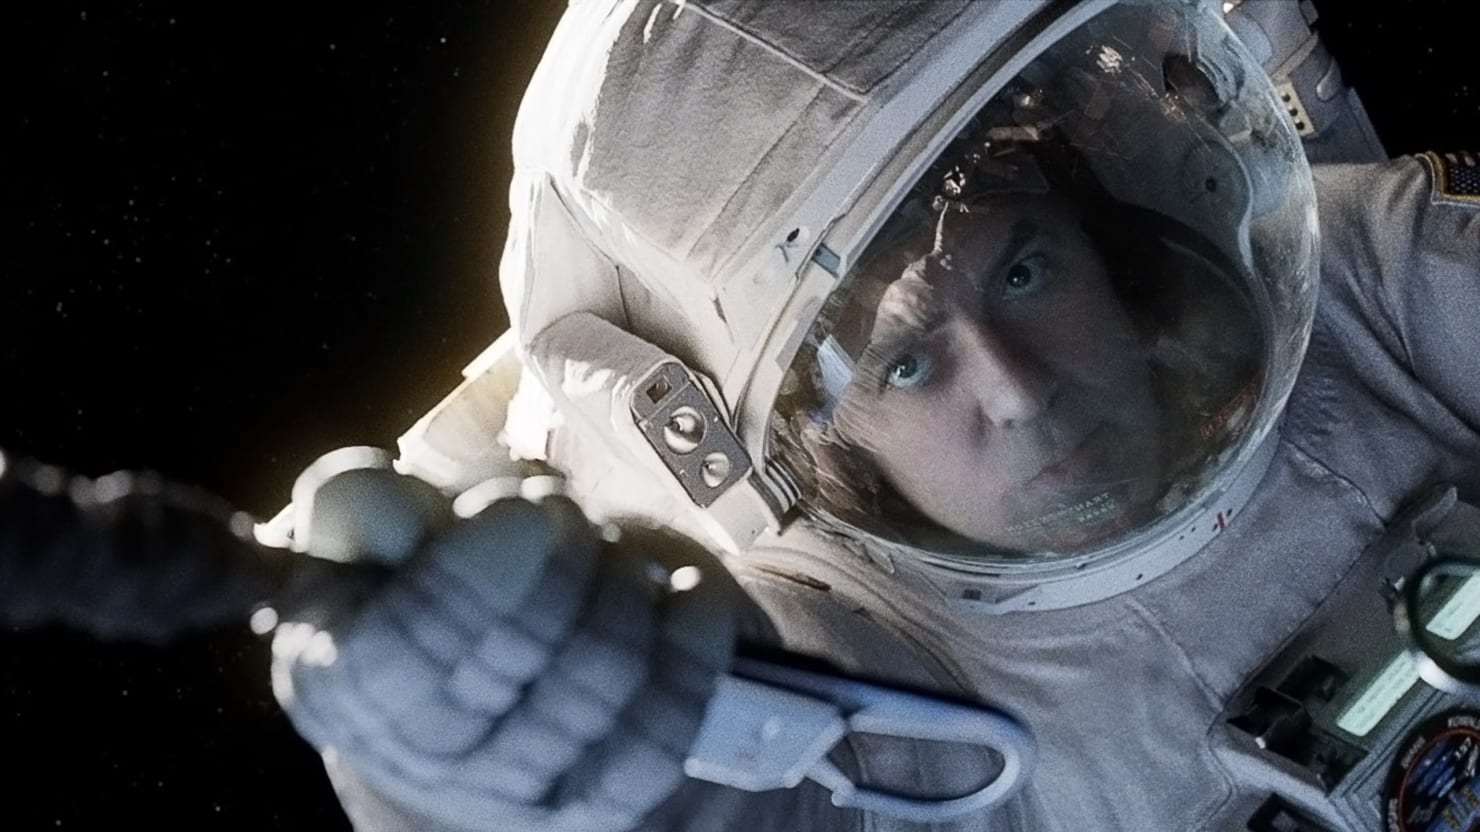 Alfonso Cuarón On His Spellbinding Sci-Fi Film 'Gravity